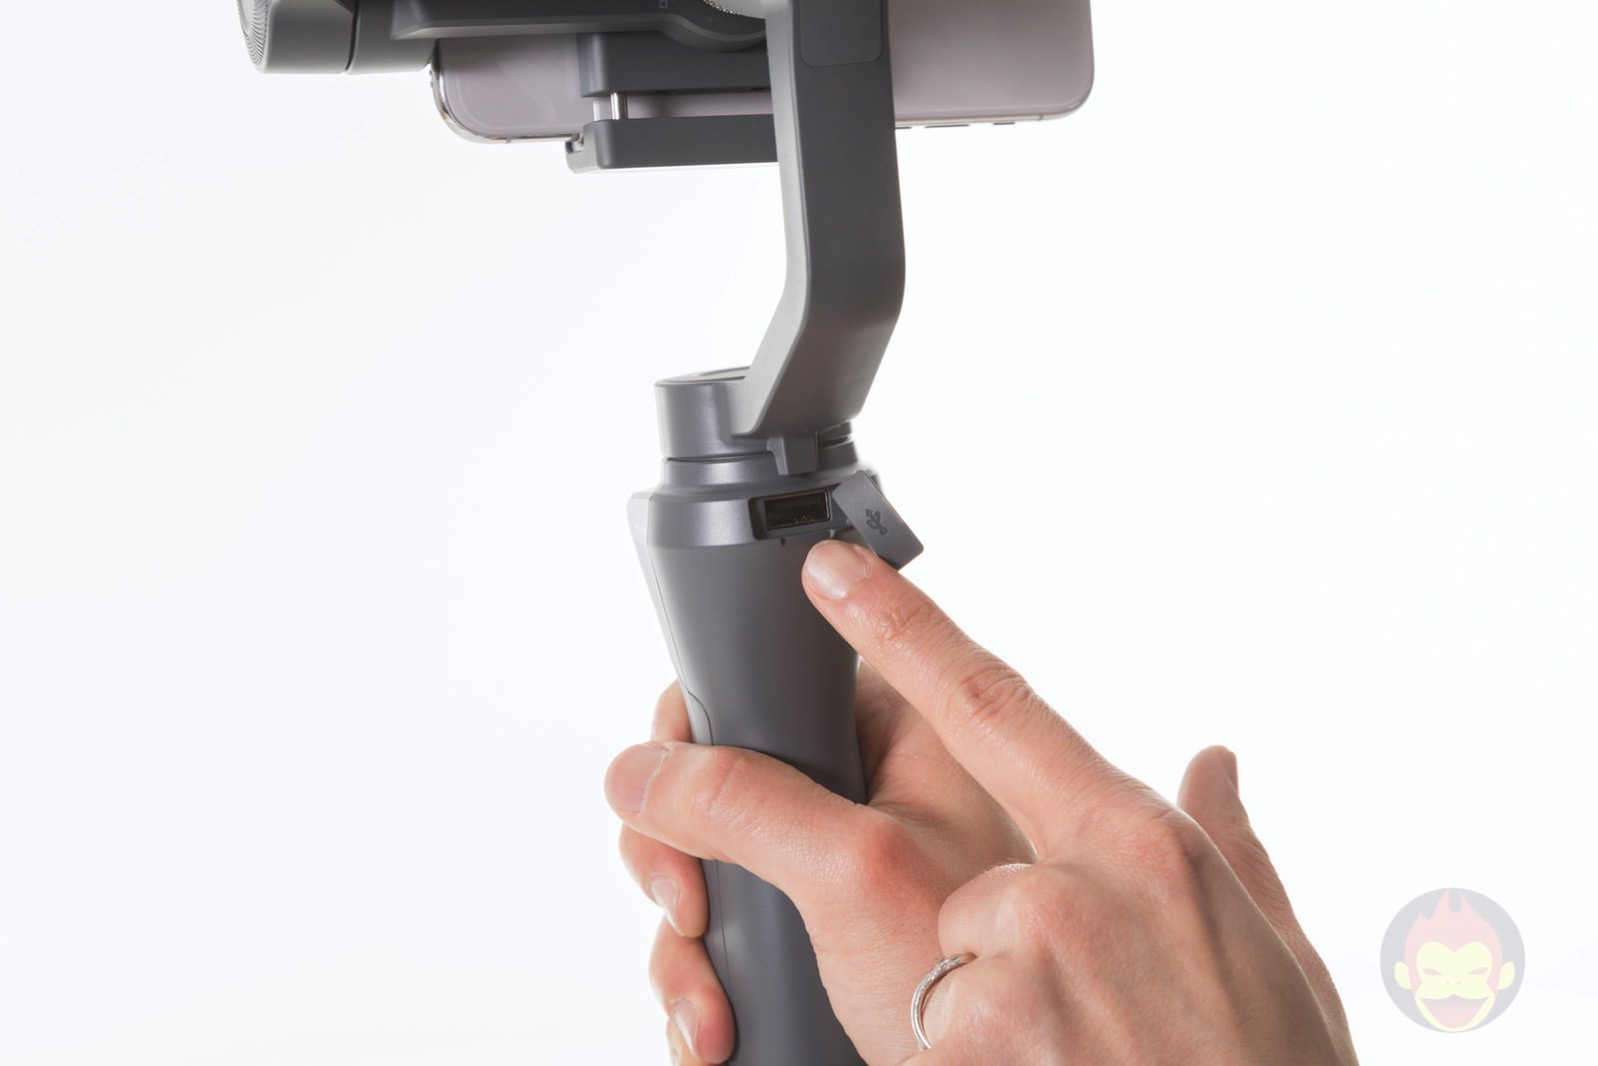 Osmo-Mobile-2-Stabilizer-10.jpg